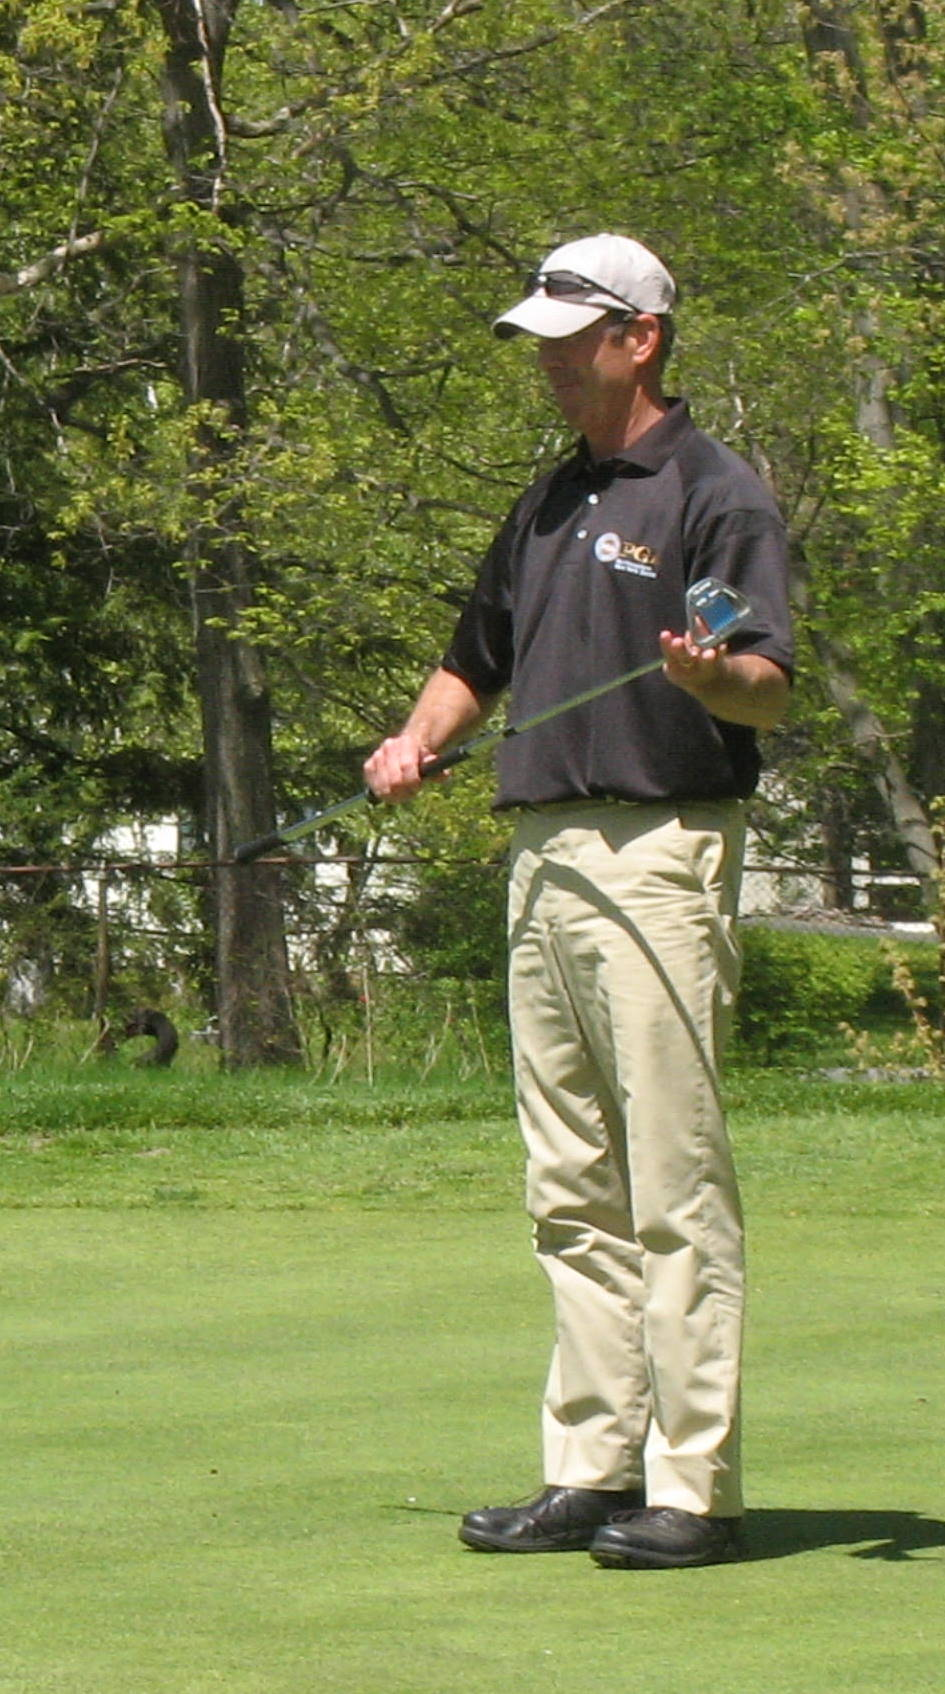 Mellet Named Section S Top Professional Capital Area Golf